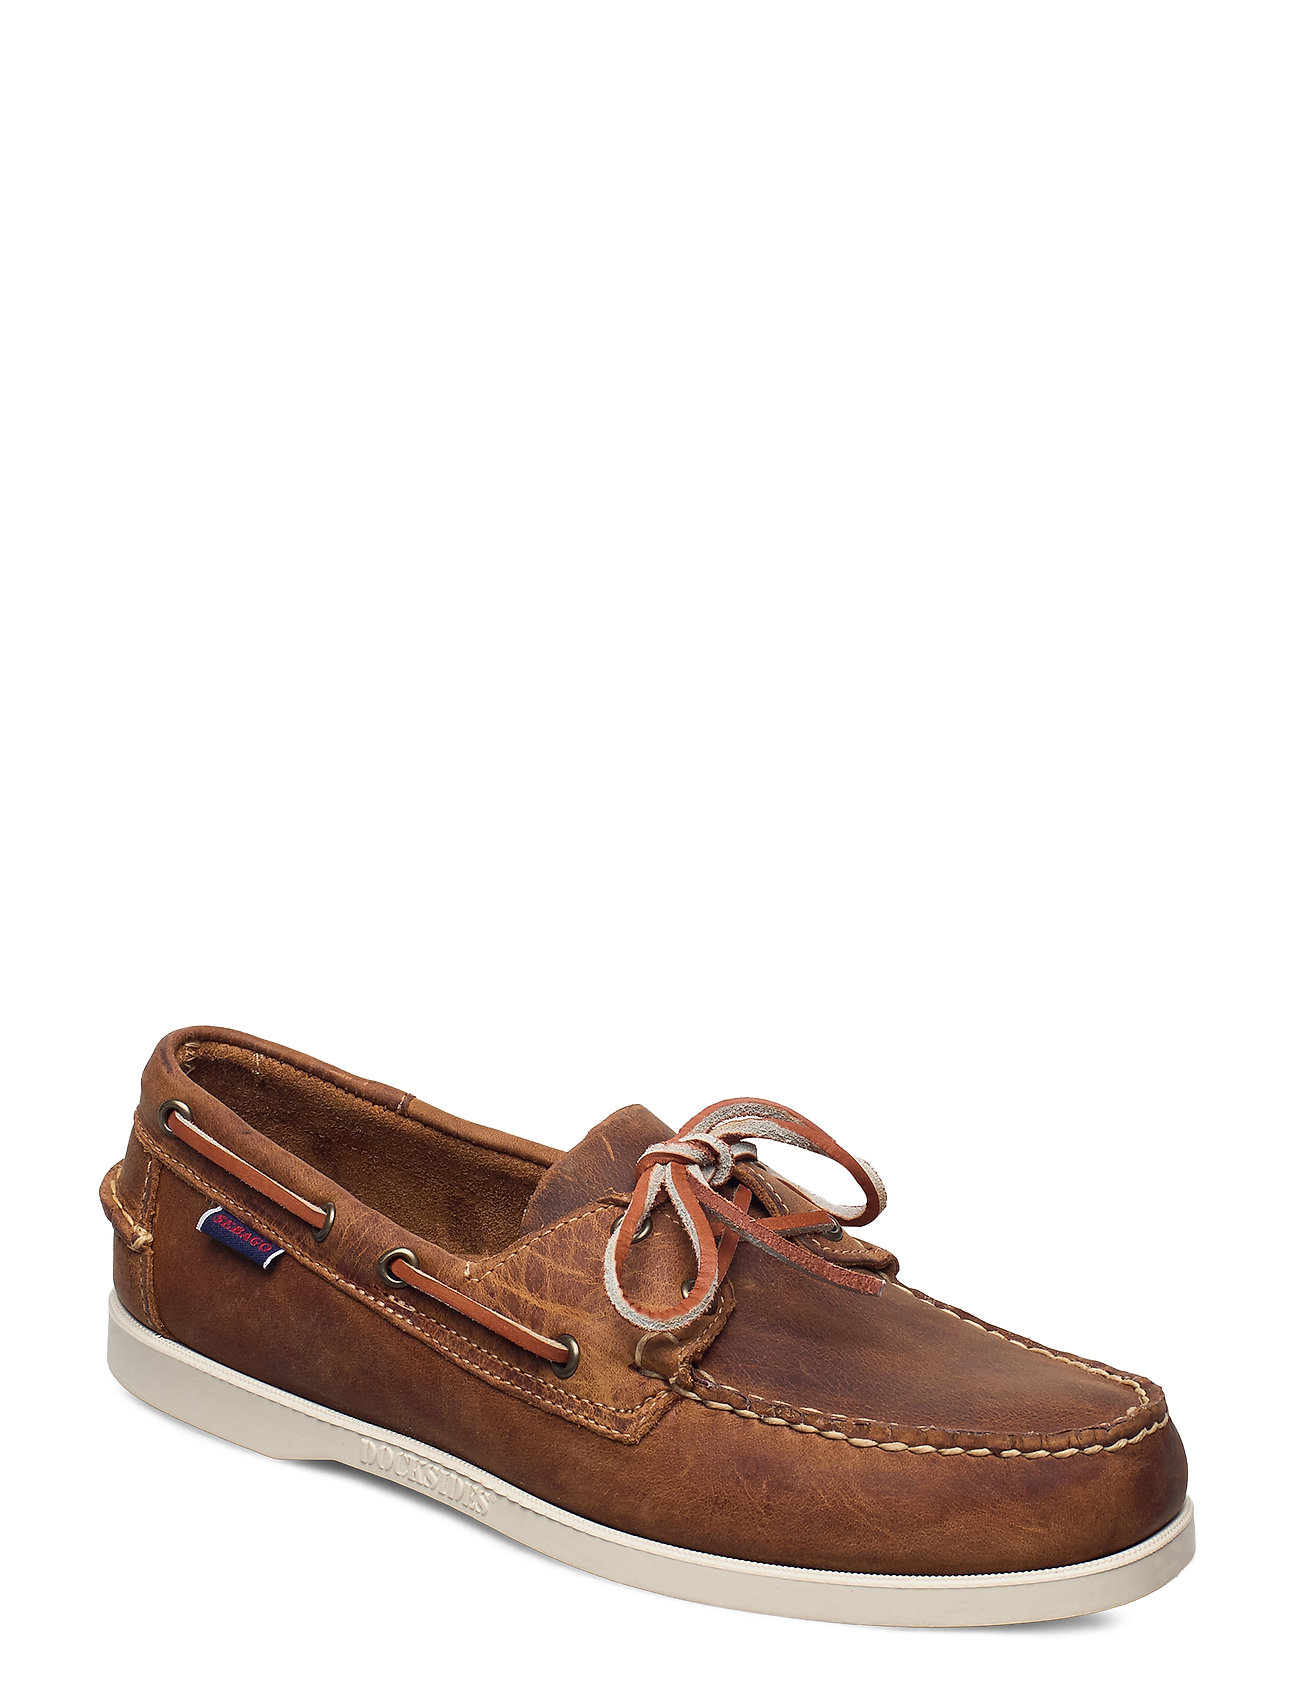 Sebago Docksides Crazy H - BROWN TAN